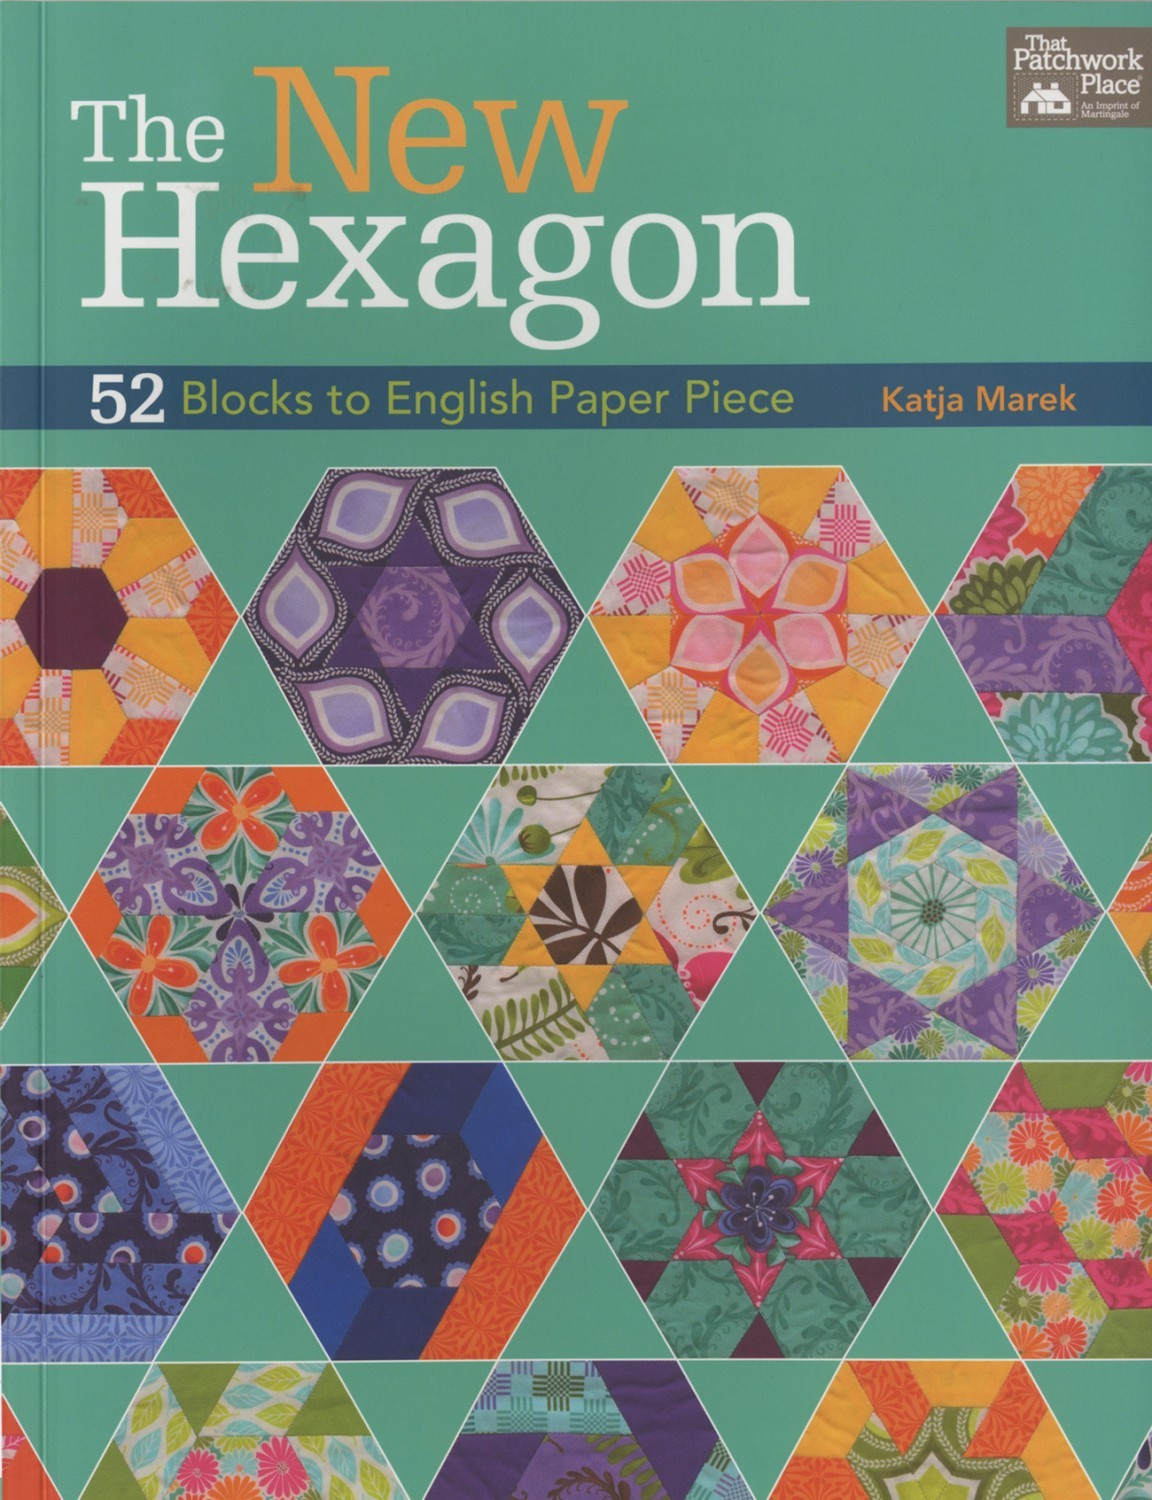 The New Hexagon Quilt Book